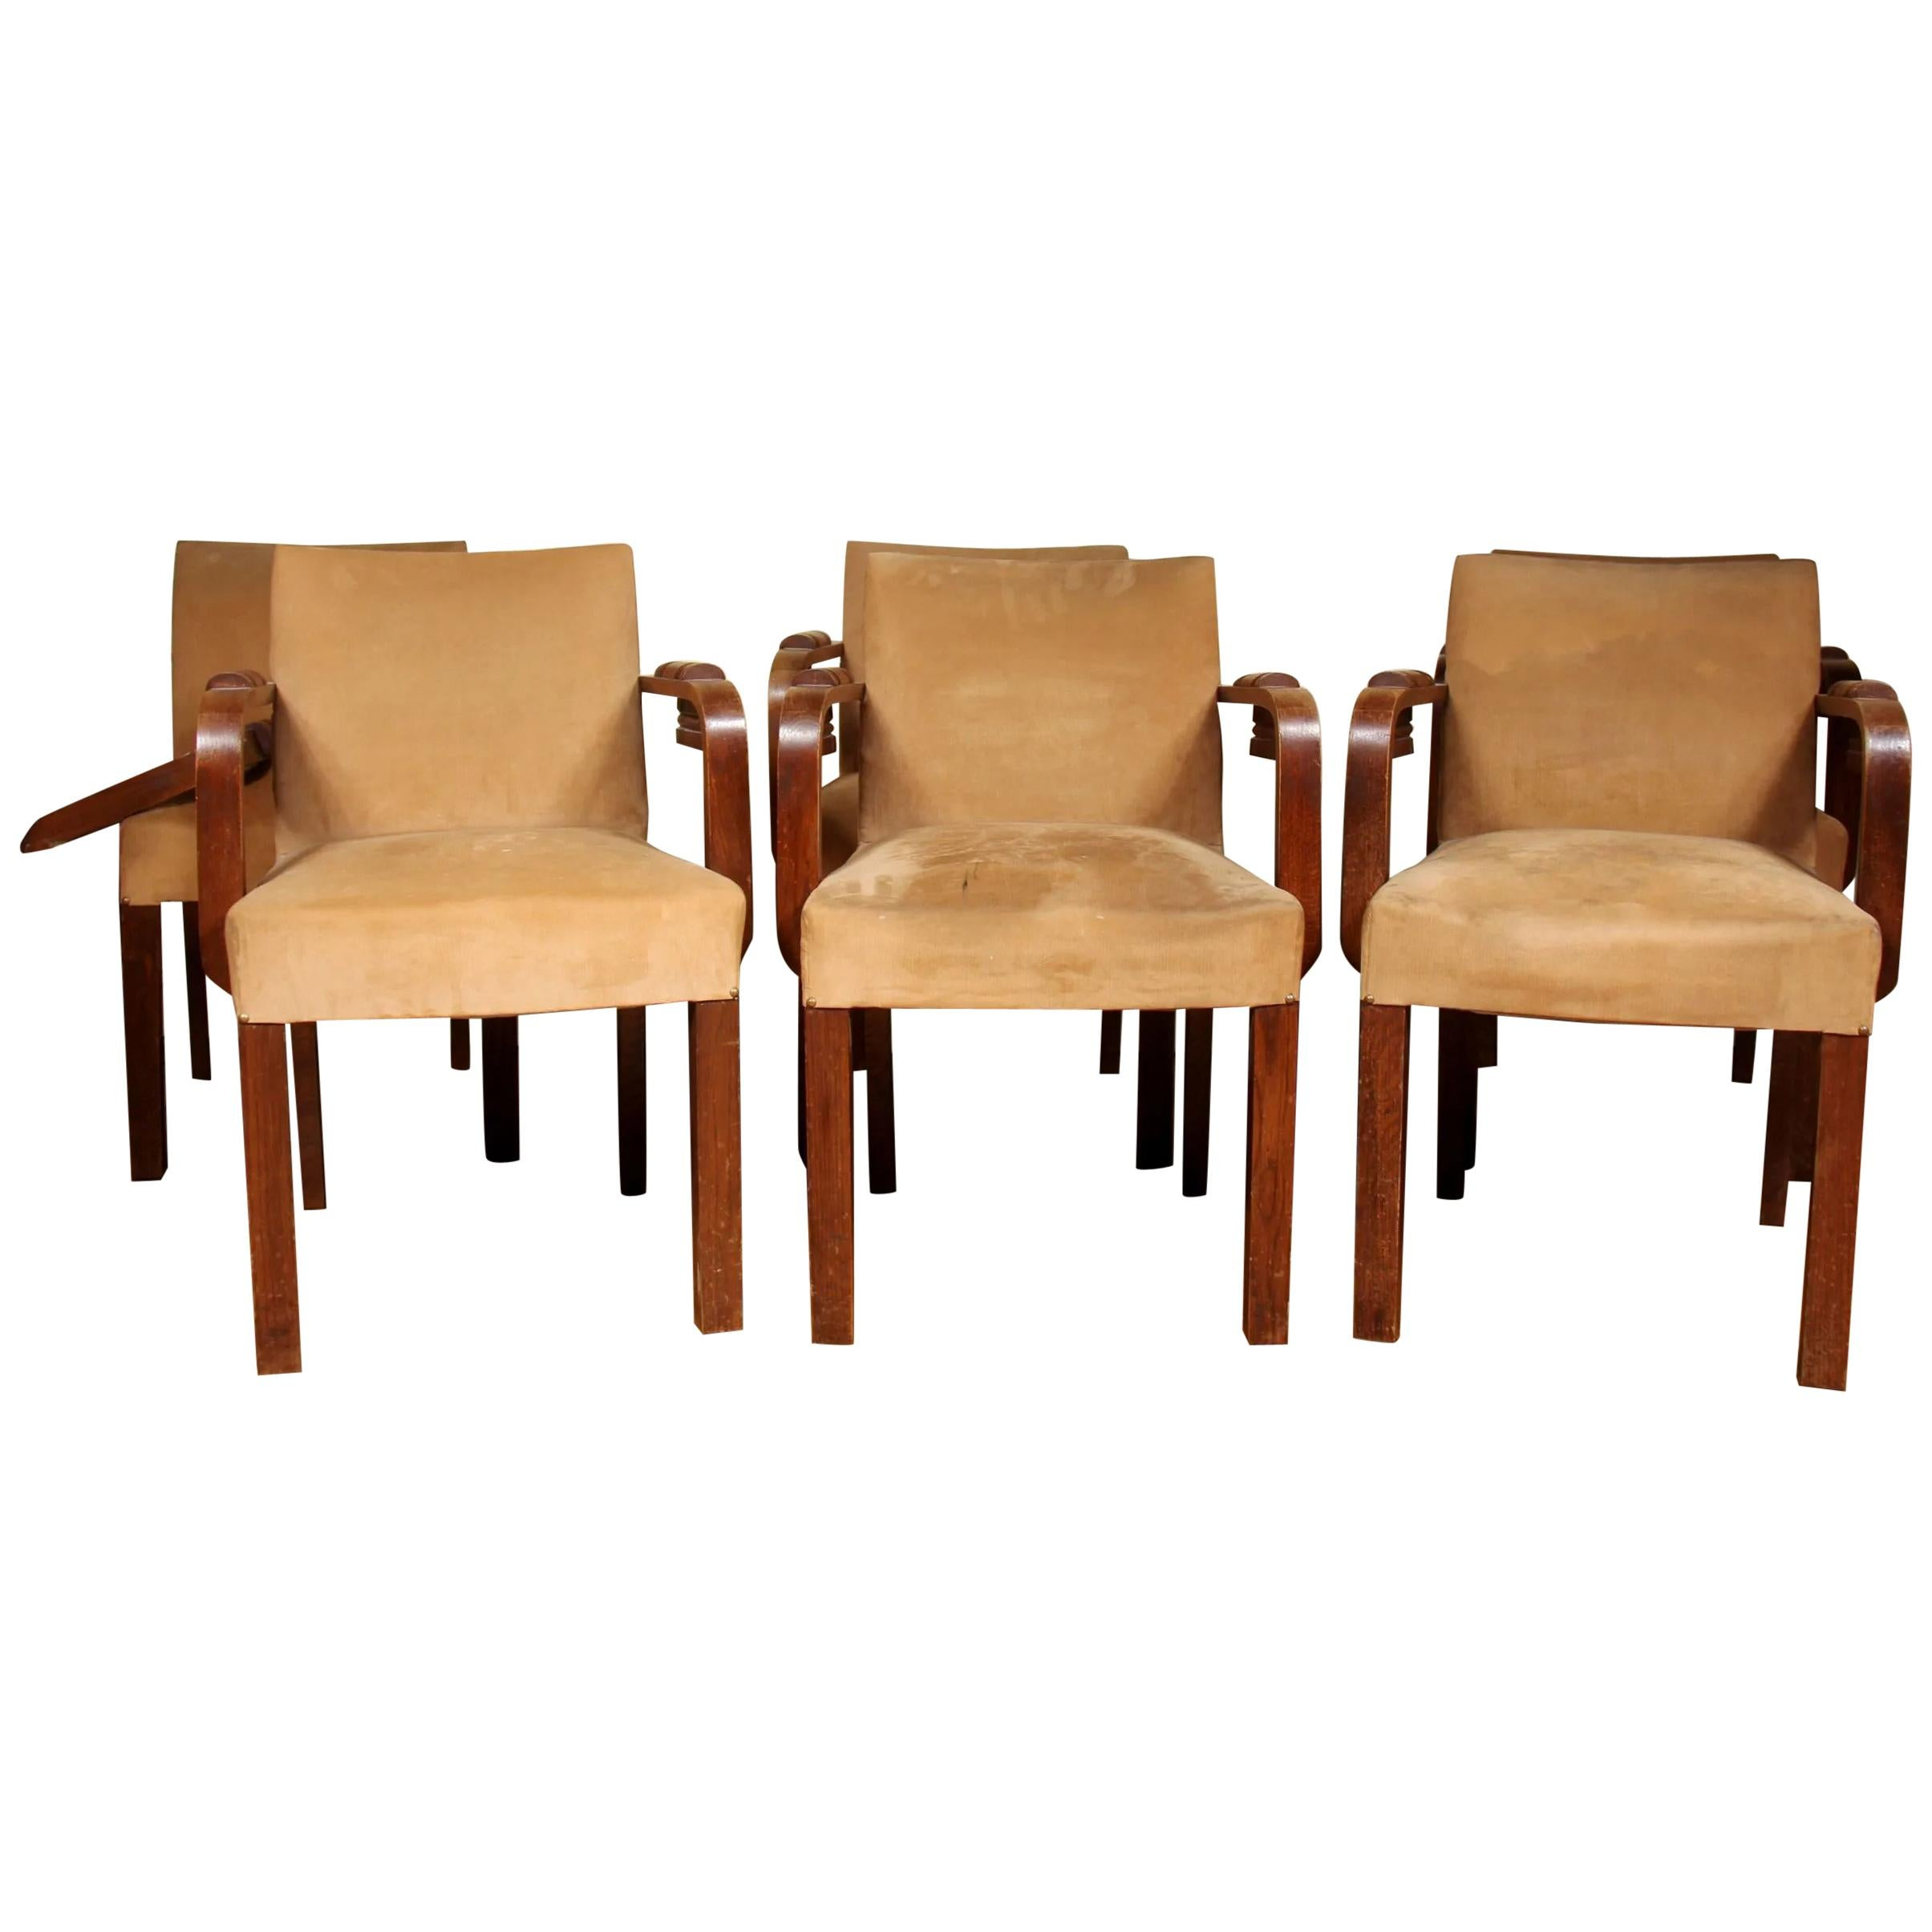 Charles Dudouyt, 6 Art Deco Oak and Leather Chairs, circa 1940